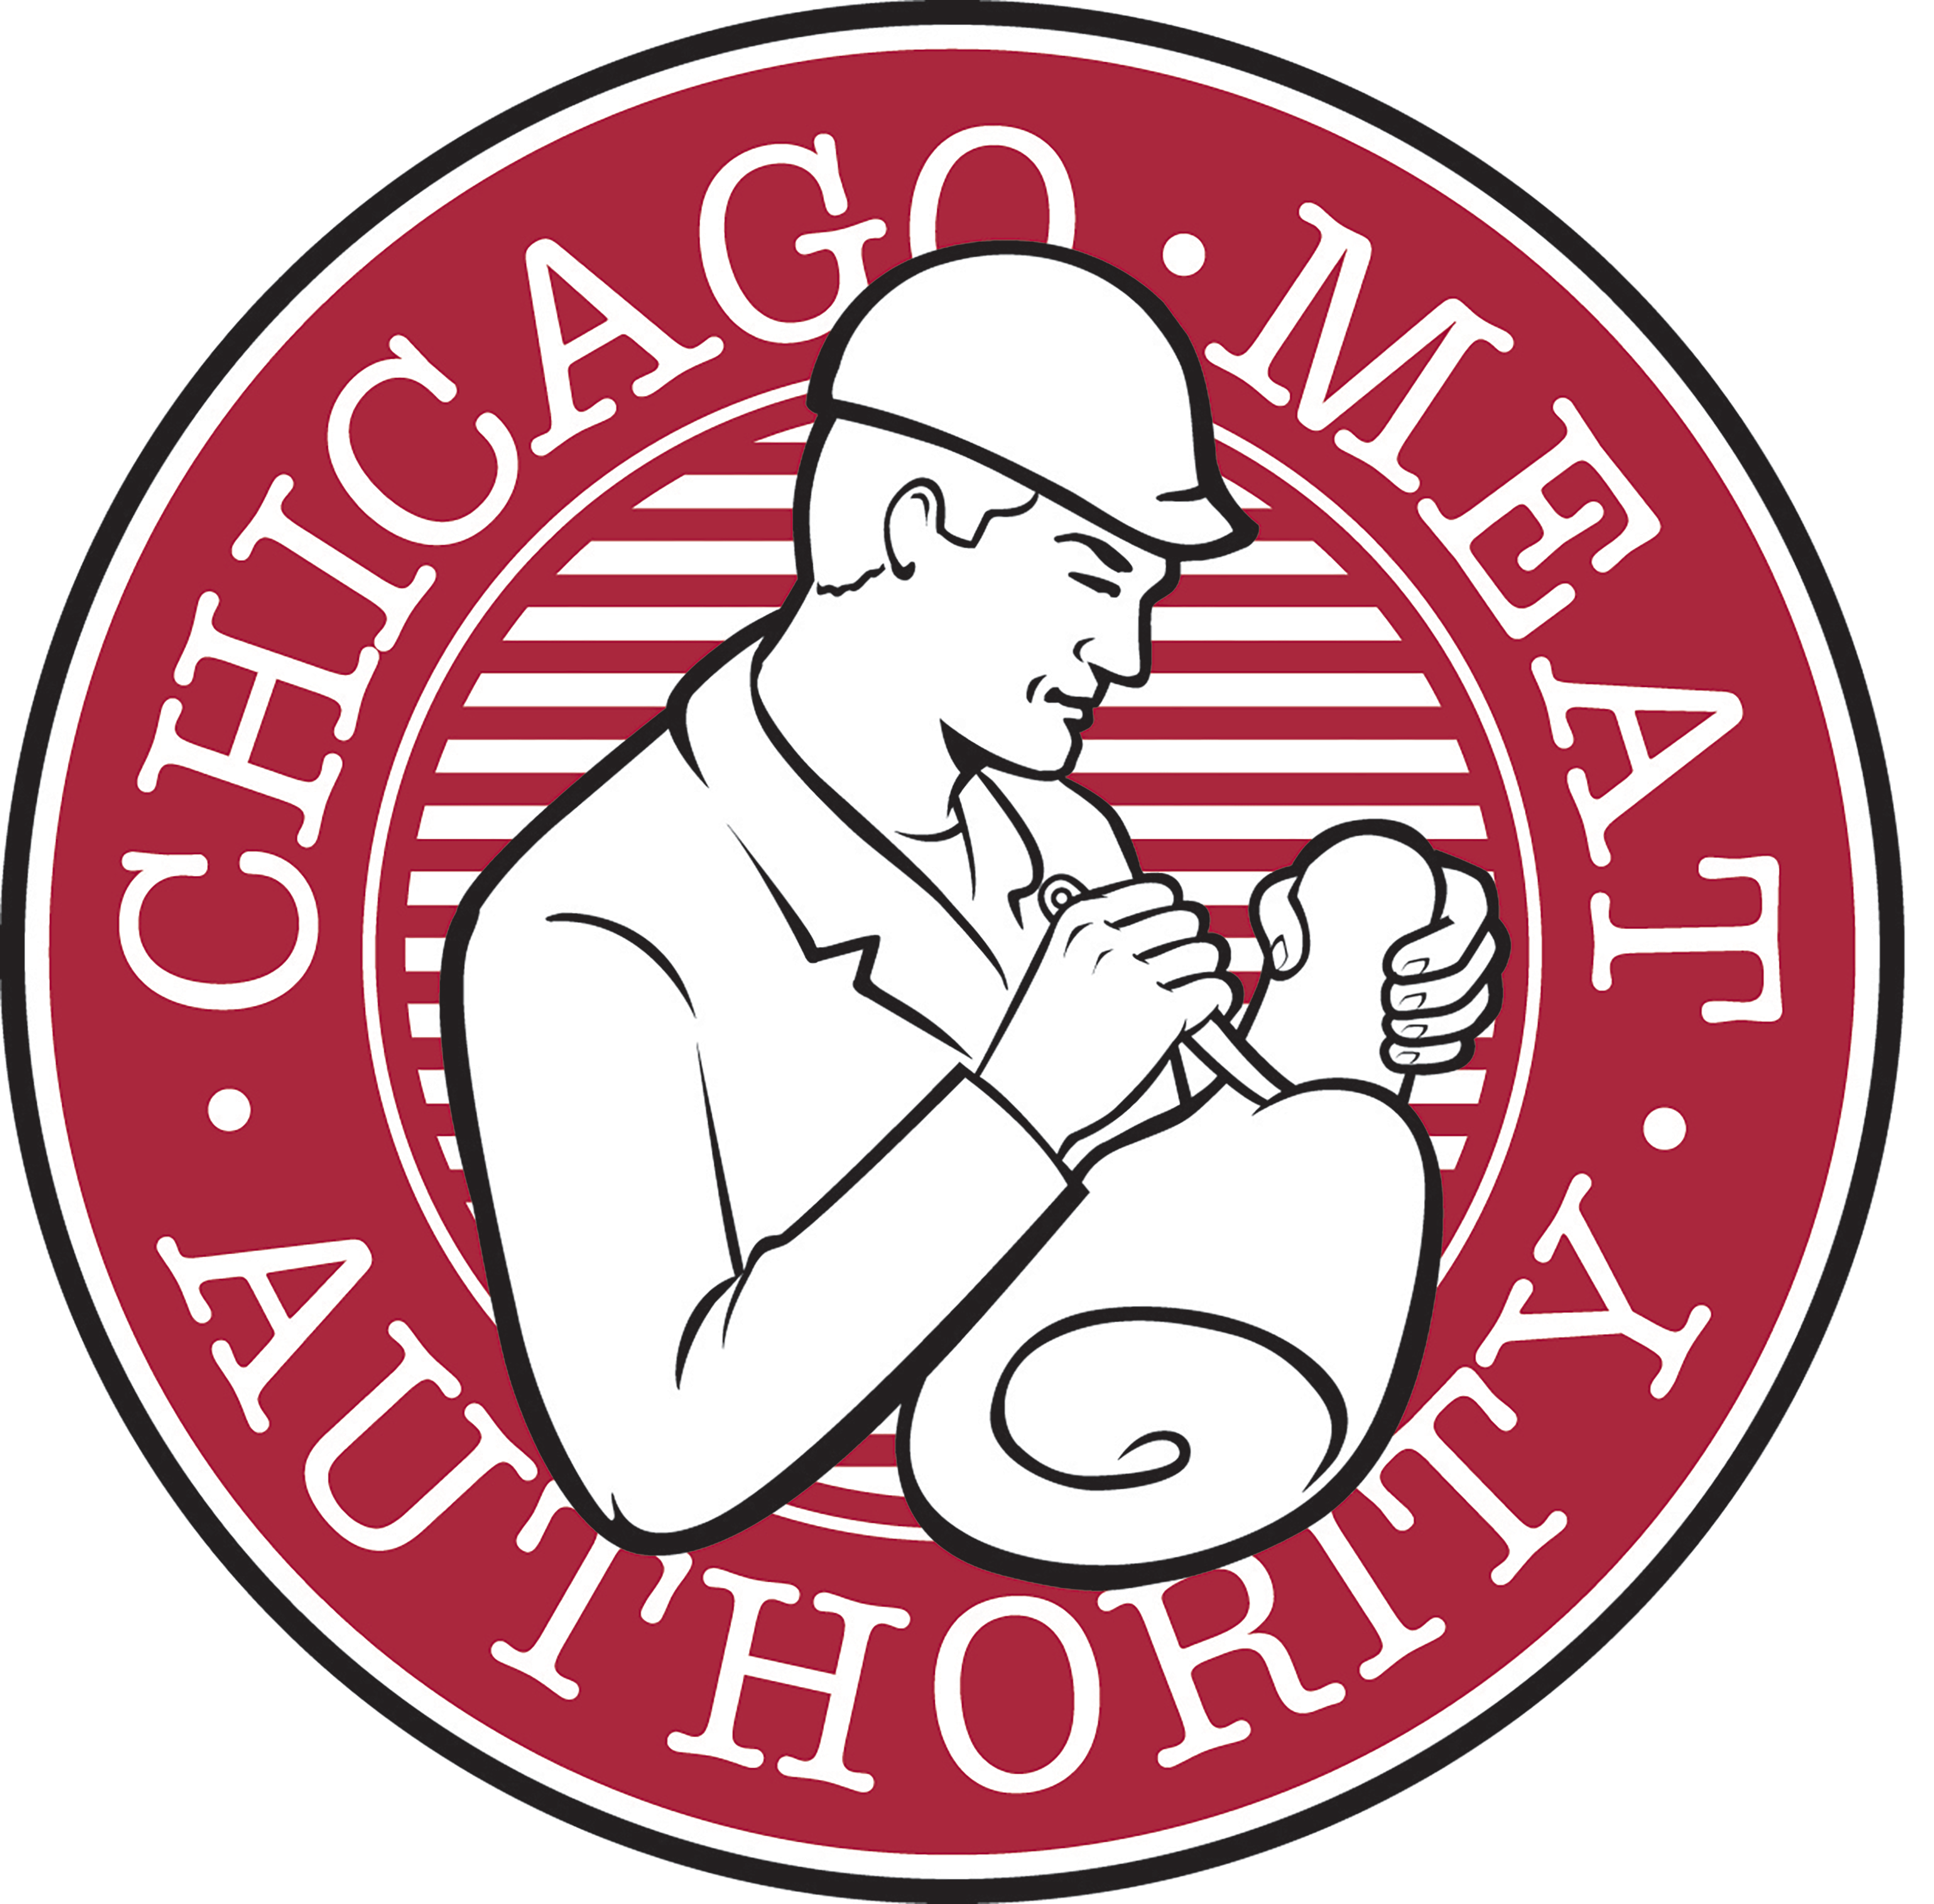 Factory clipart meat factory. Home chicago authority